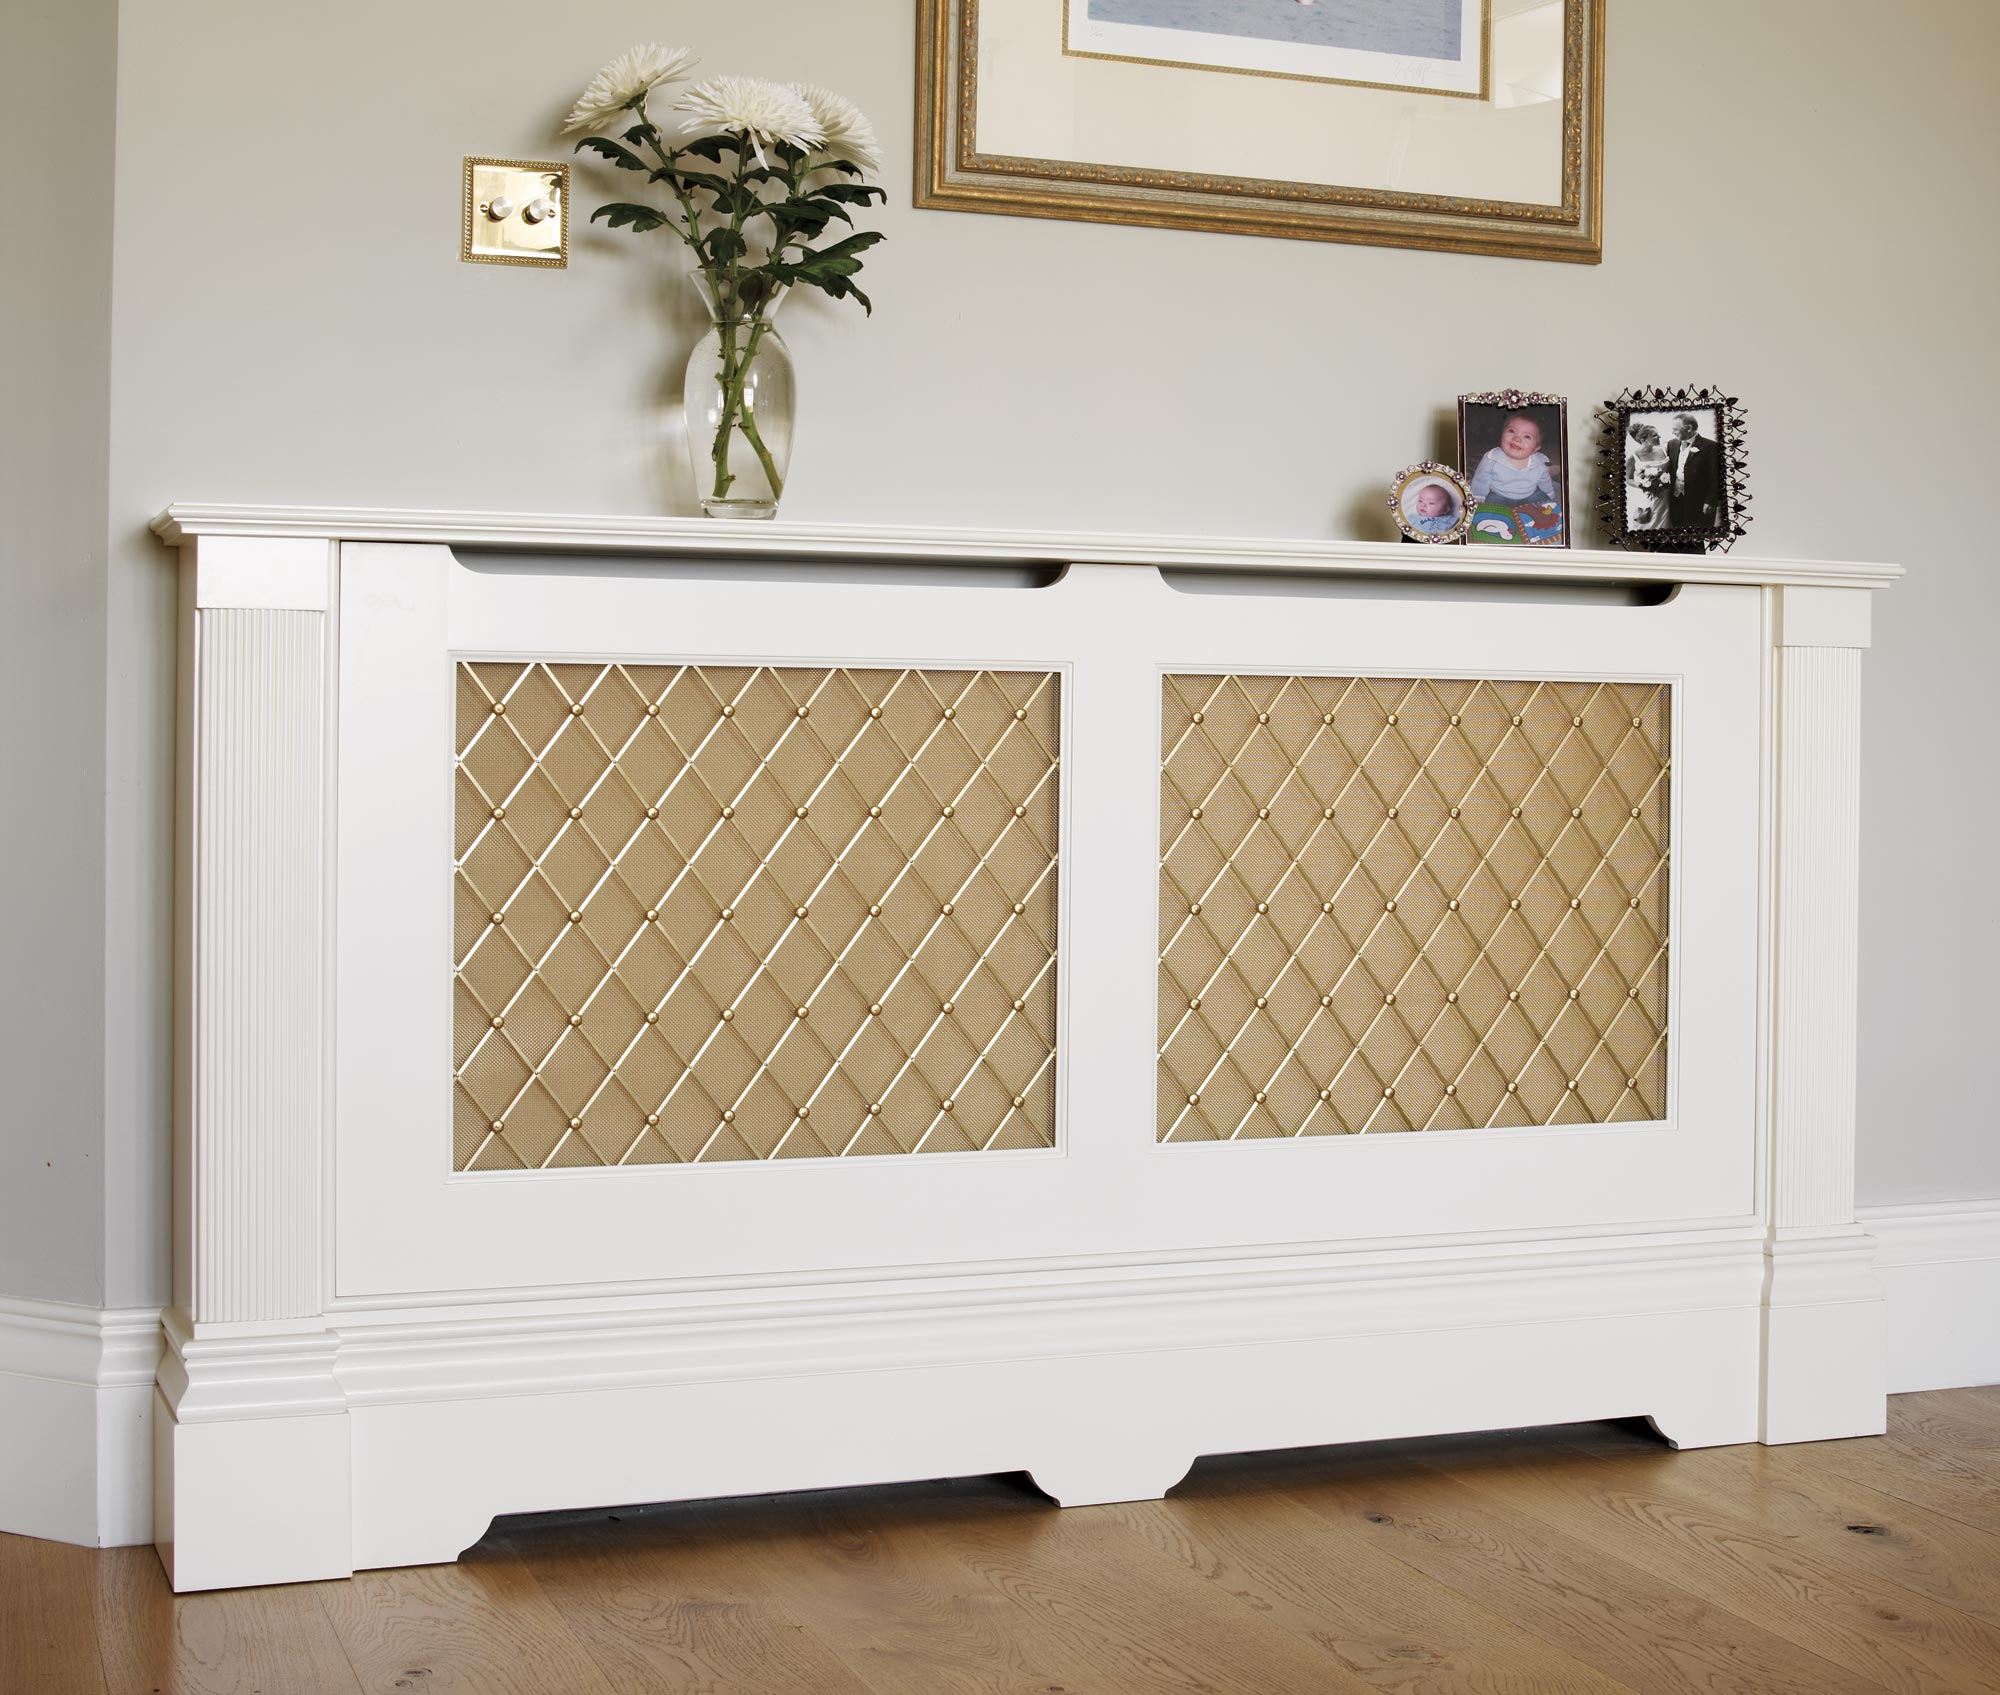 radiator covers furniture restoration sofa repairs furniture repairs. Black Bedroom Furniture Sets. Home Design Ideas